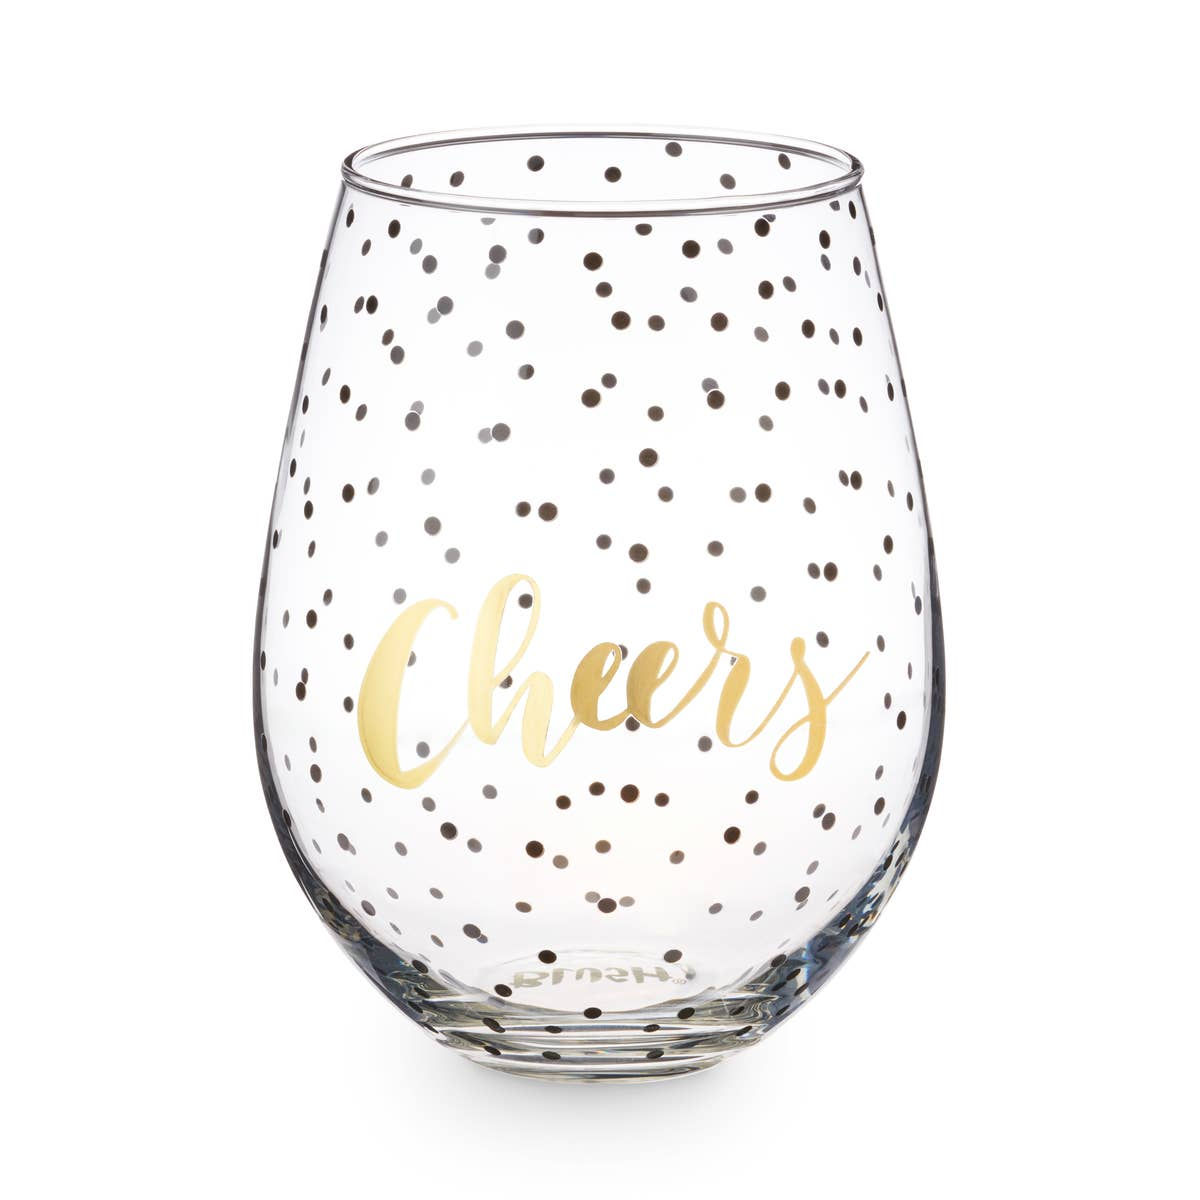 Cheers 30 oz Stemless Wine Glass